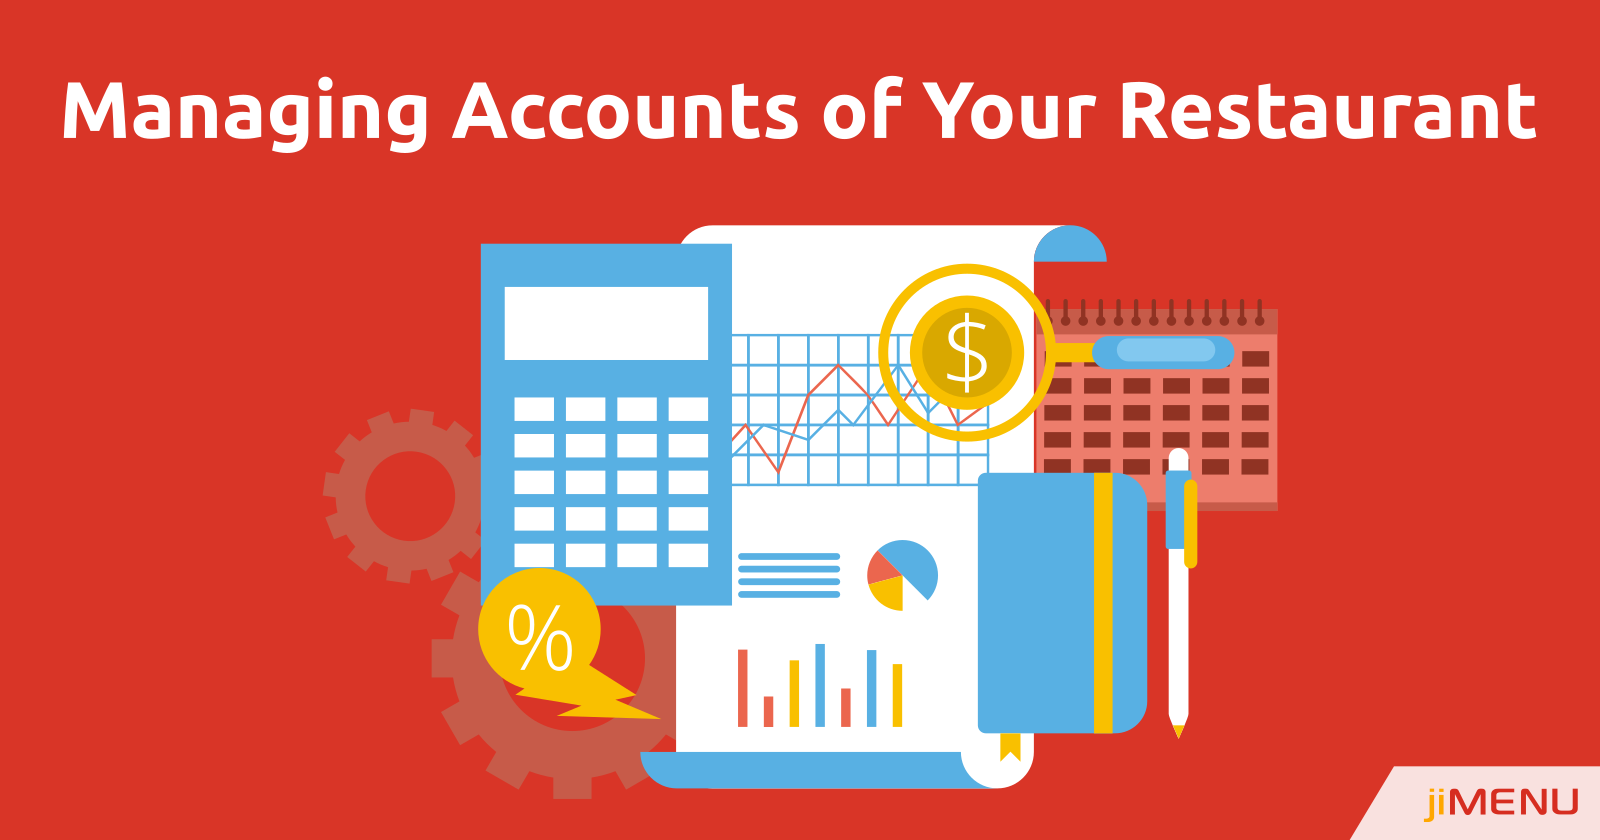 Efficiently Managing Finance and Accounts of Your Restaurant